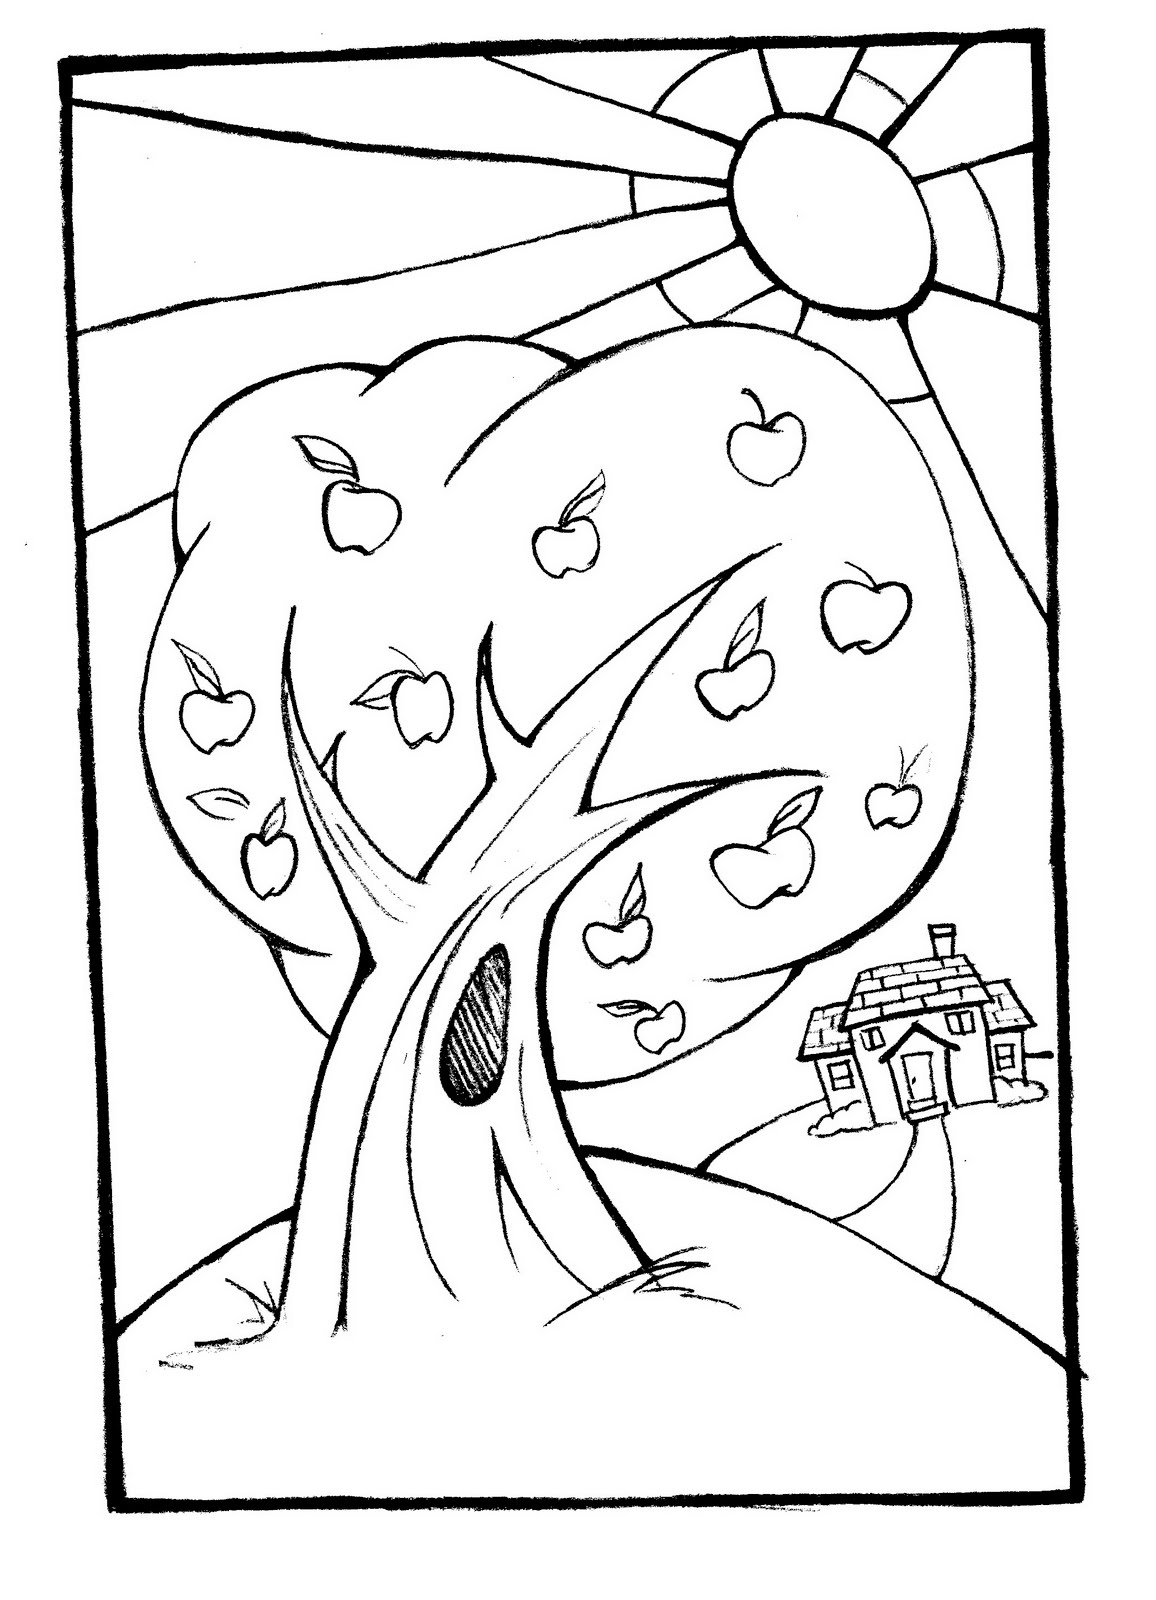 Fr free coloring pages for june - Free Printable Coloring Sheet